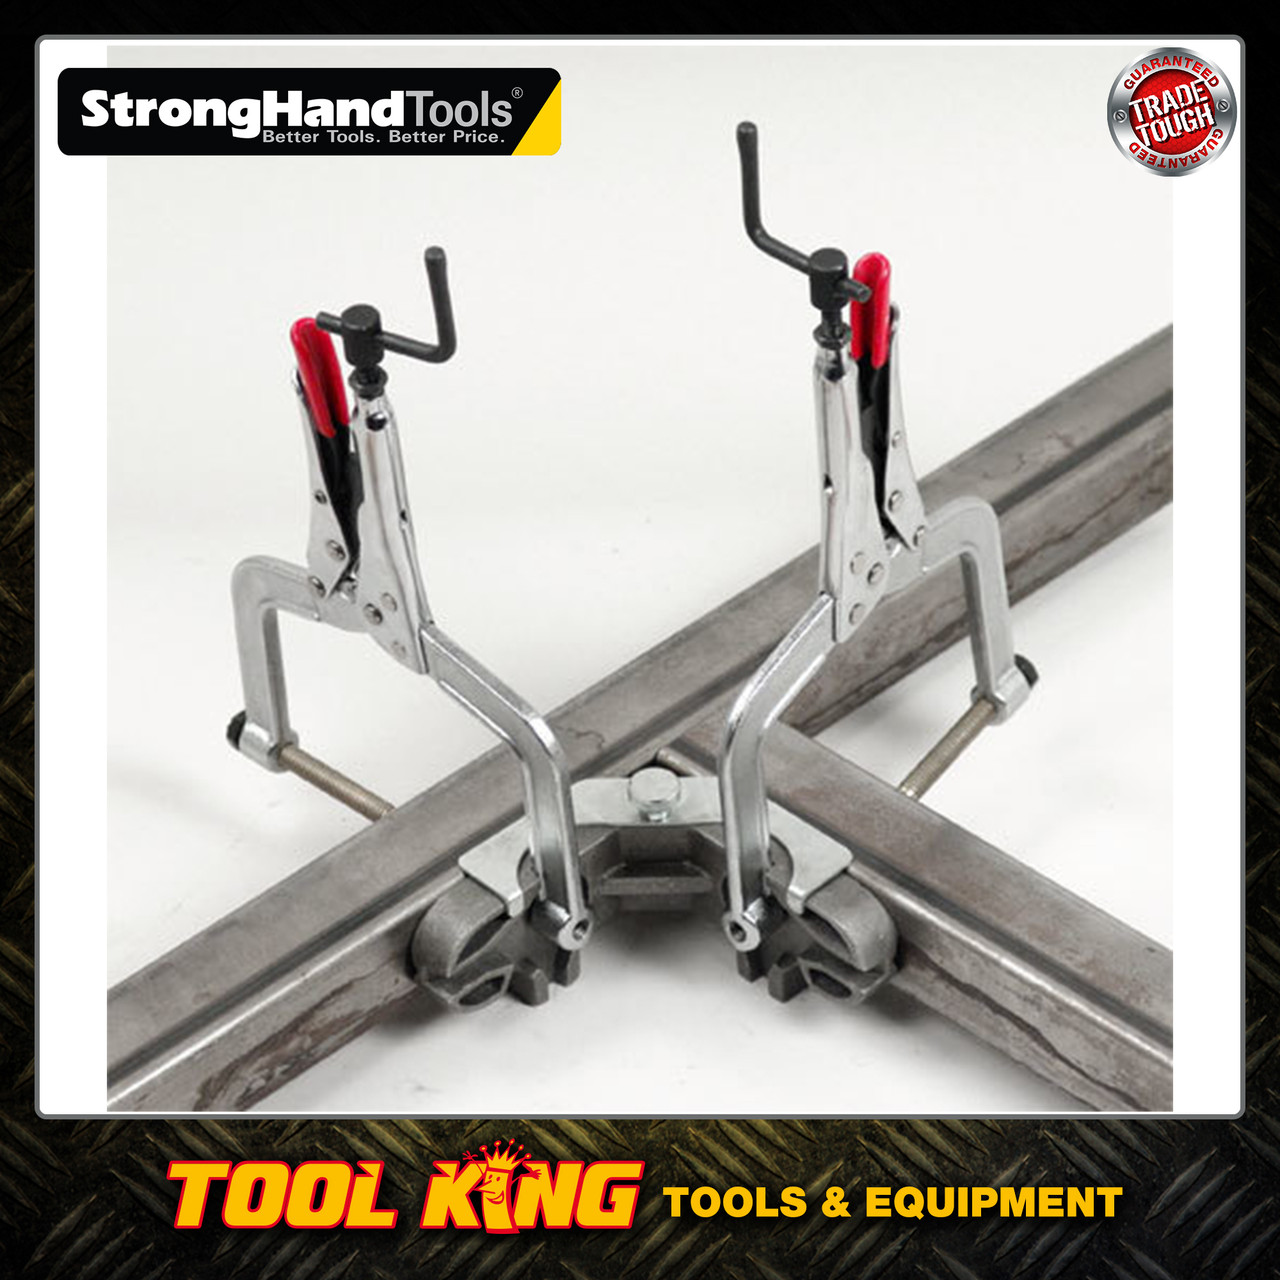 Welders clamp pliers 90 degree angle setting  Stronghand